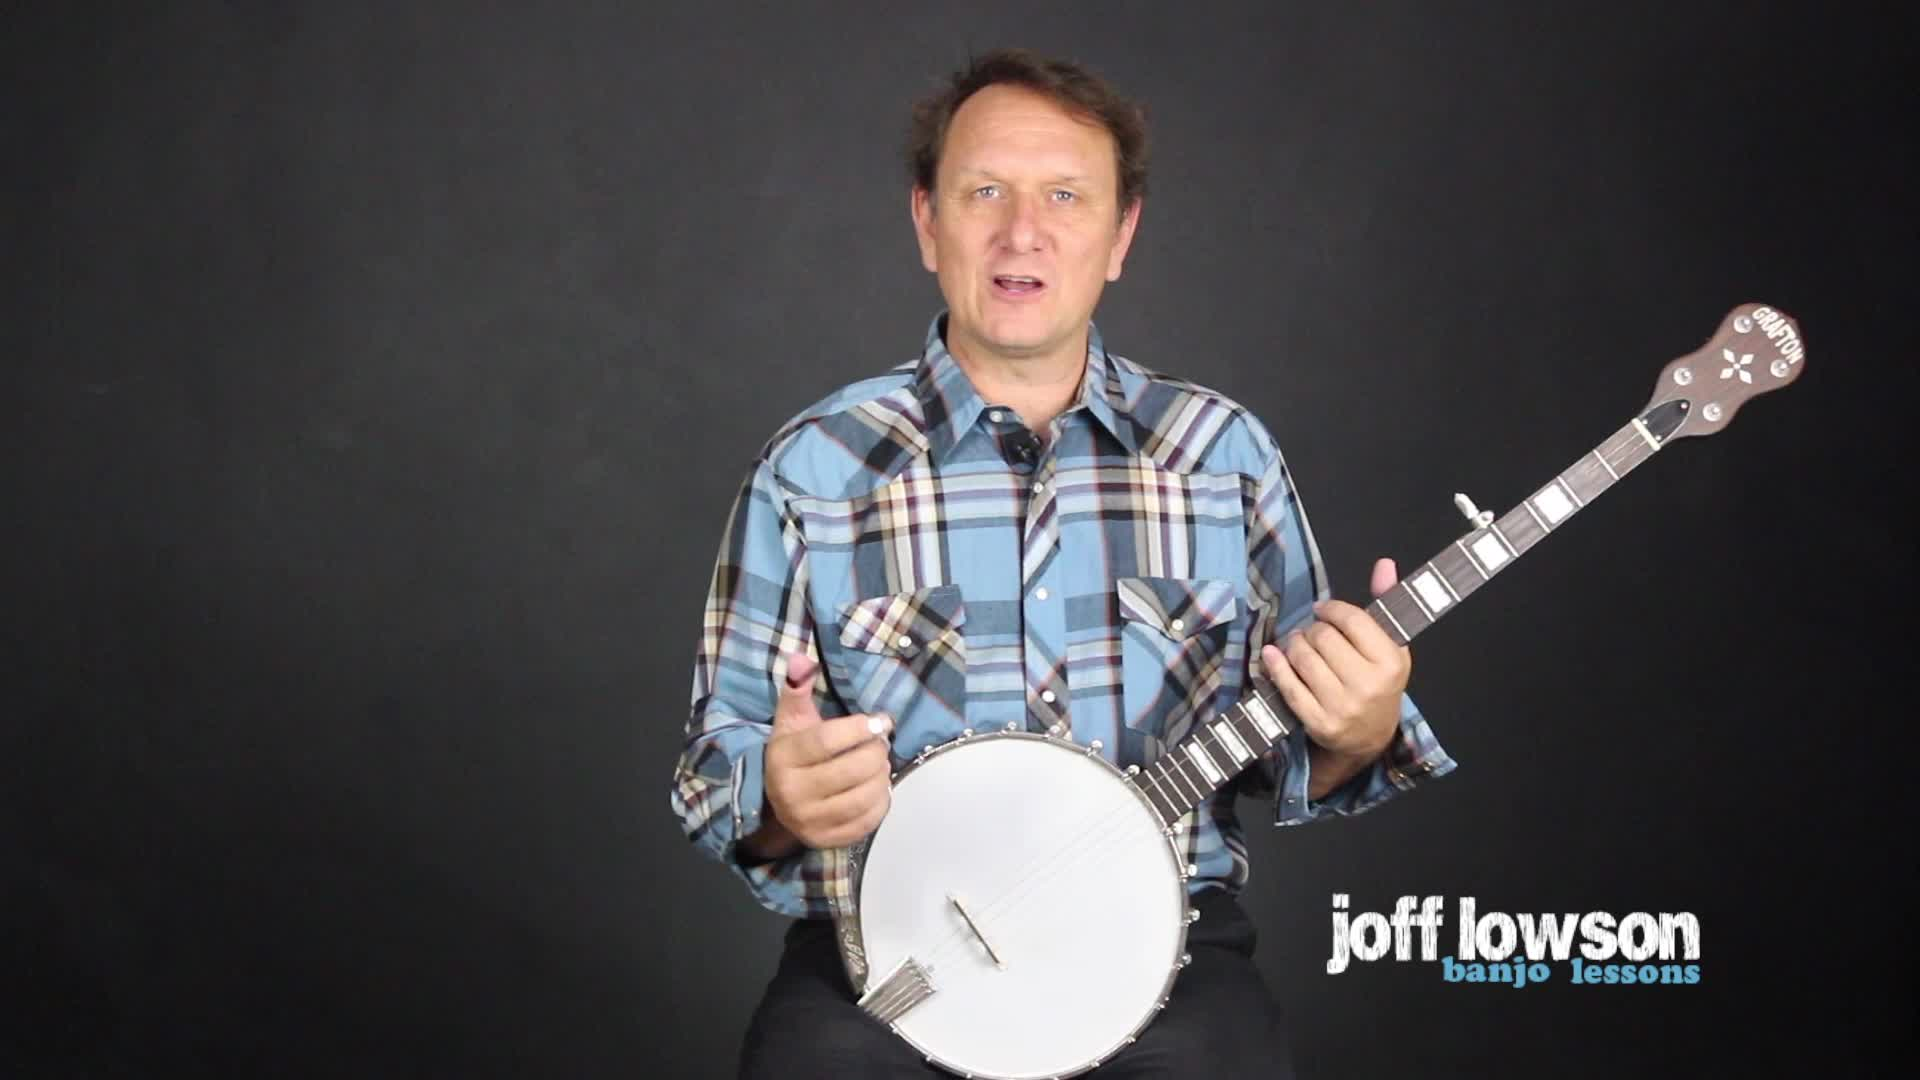 Play An Easy Song On The Banjo Over 50 Free Video Tutorials